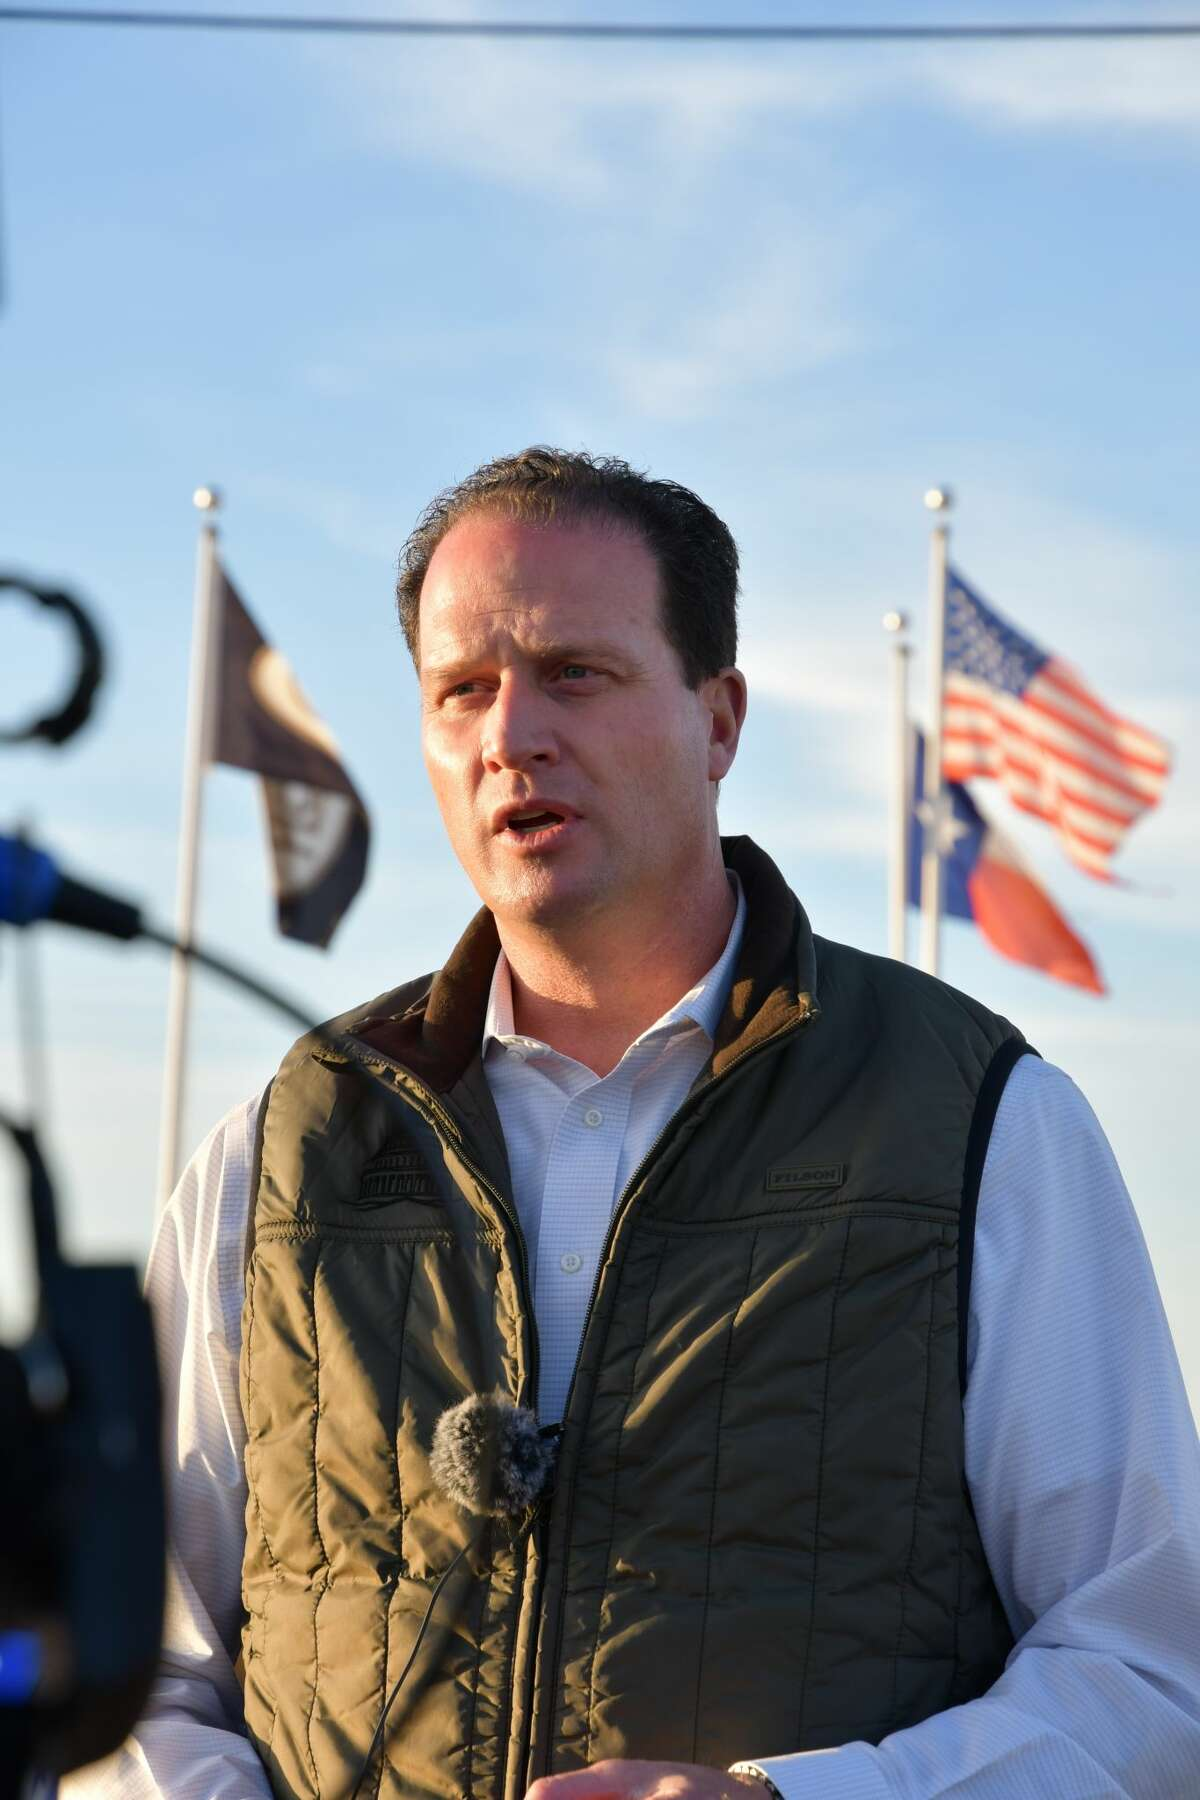 U.S. Rep. August Pfluger (TX-11) will hold a town hall at 5:30 p.m. Monday at the Bush Convention Center, 105 N Main St.